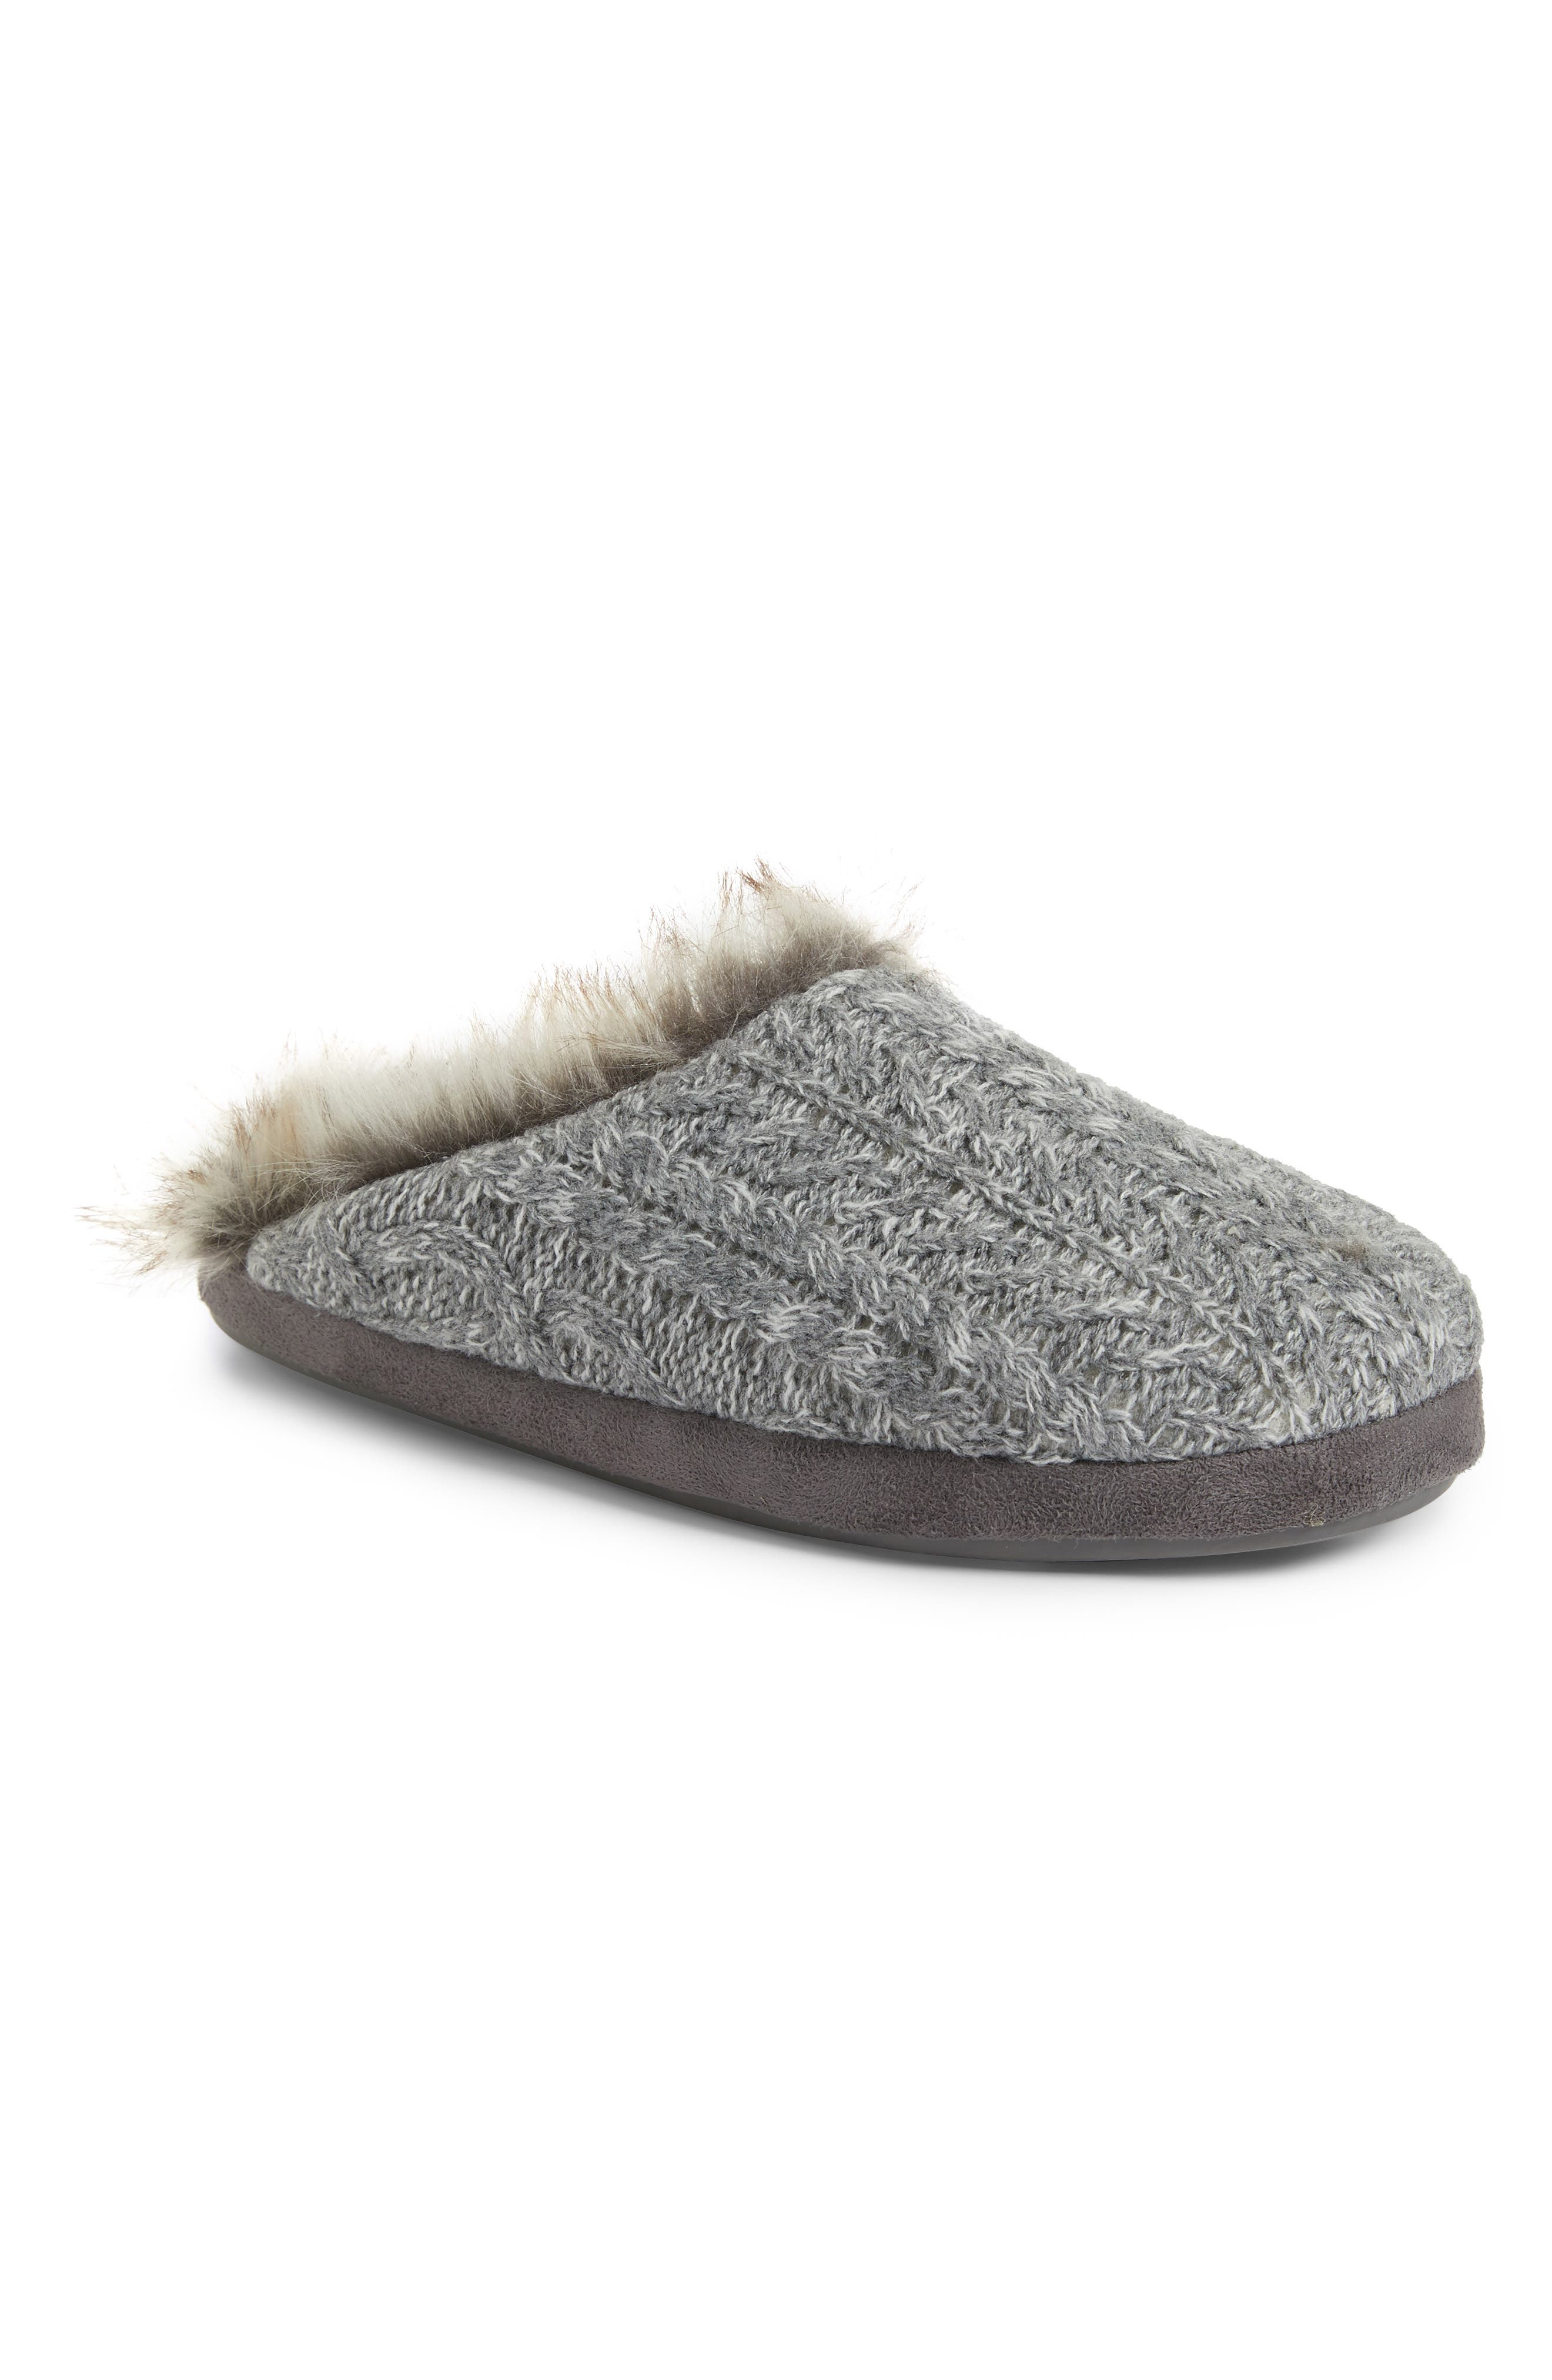 PJ SALVAGE Faux Fur Trim Cable Knit Slipper, Main, color, HEATHER GREY